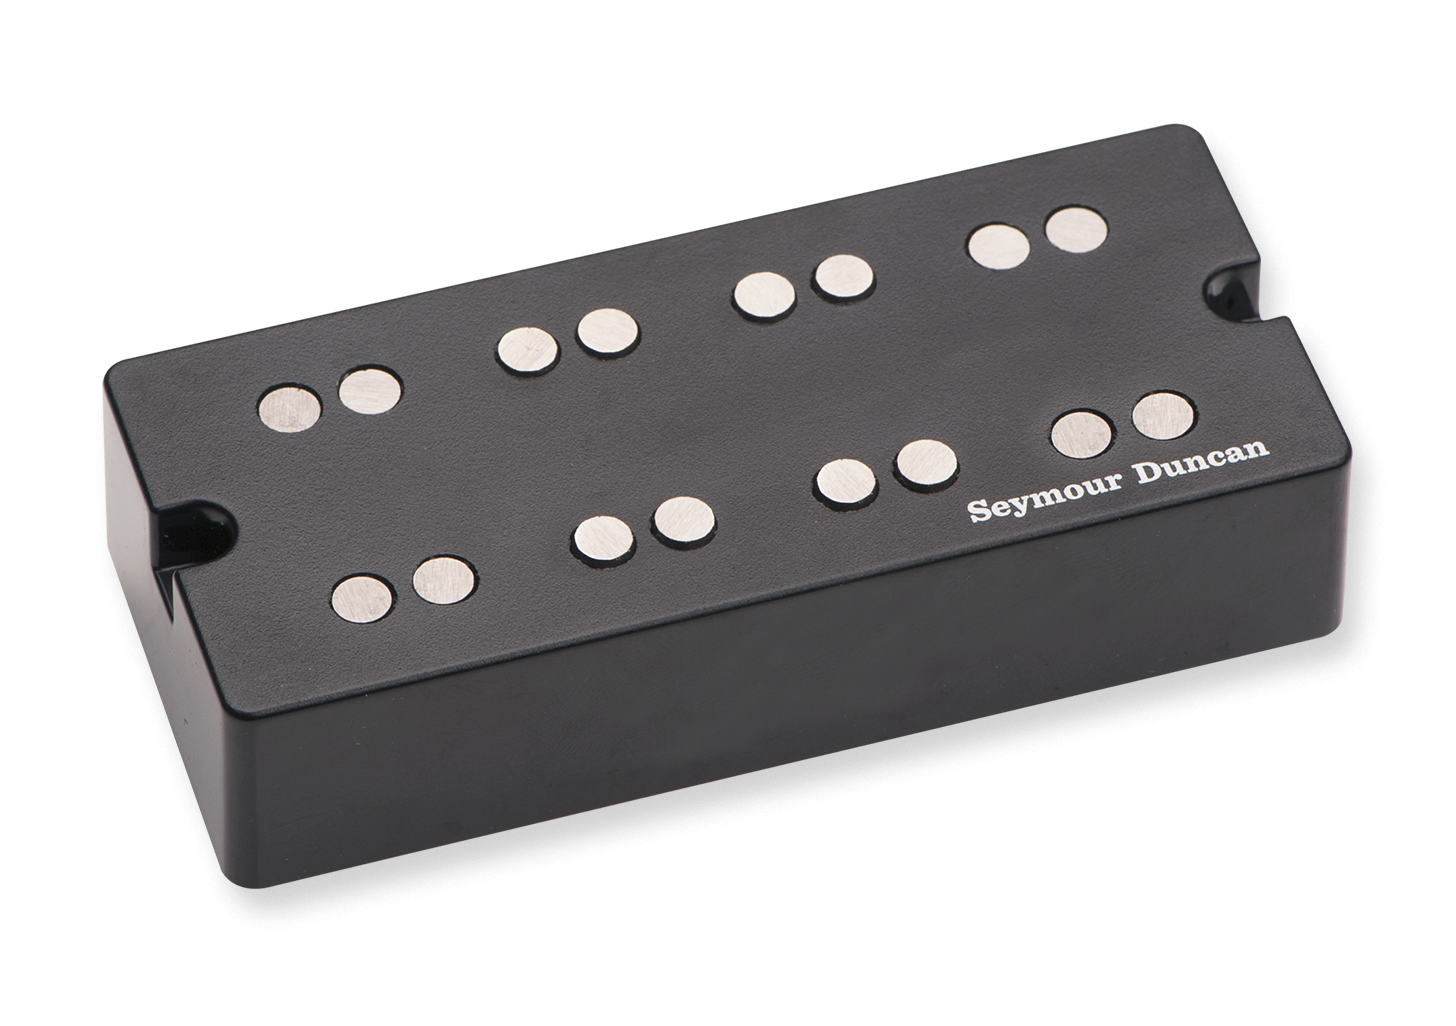 Seymour Duncan NYC Bass